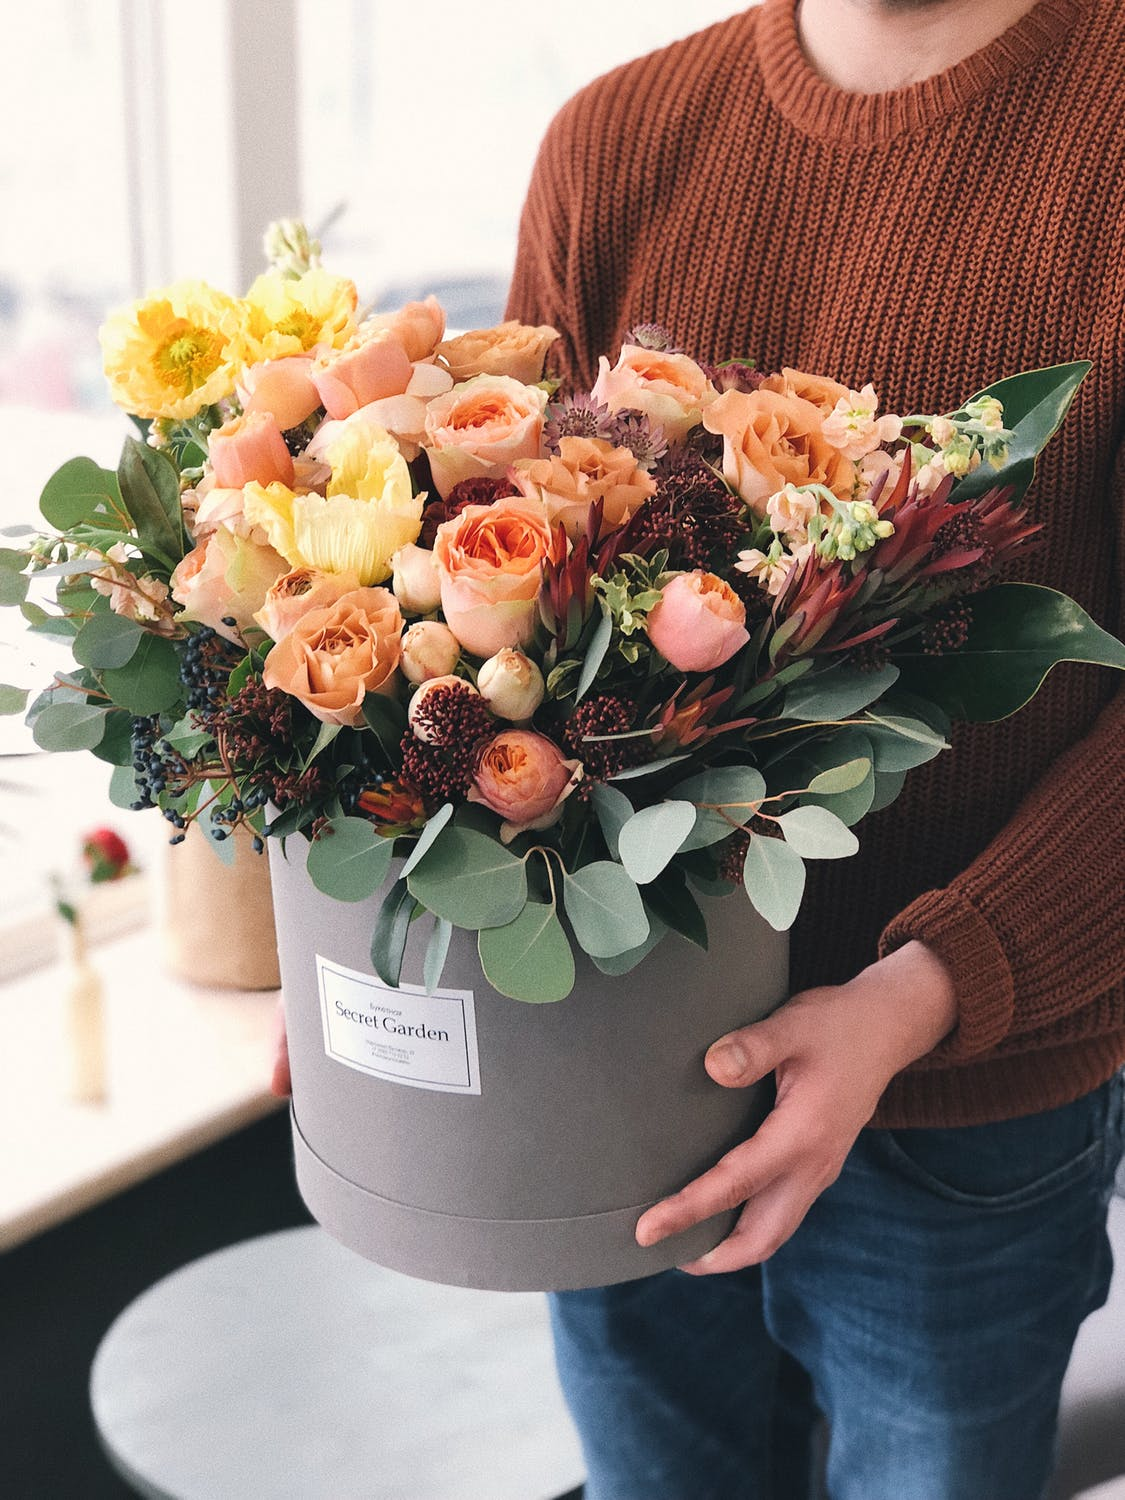 Online Flower Delivery Dubai   Flowers for 3 Happy Occasions